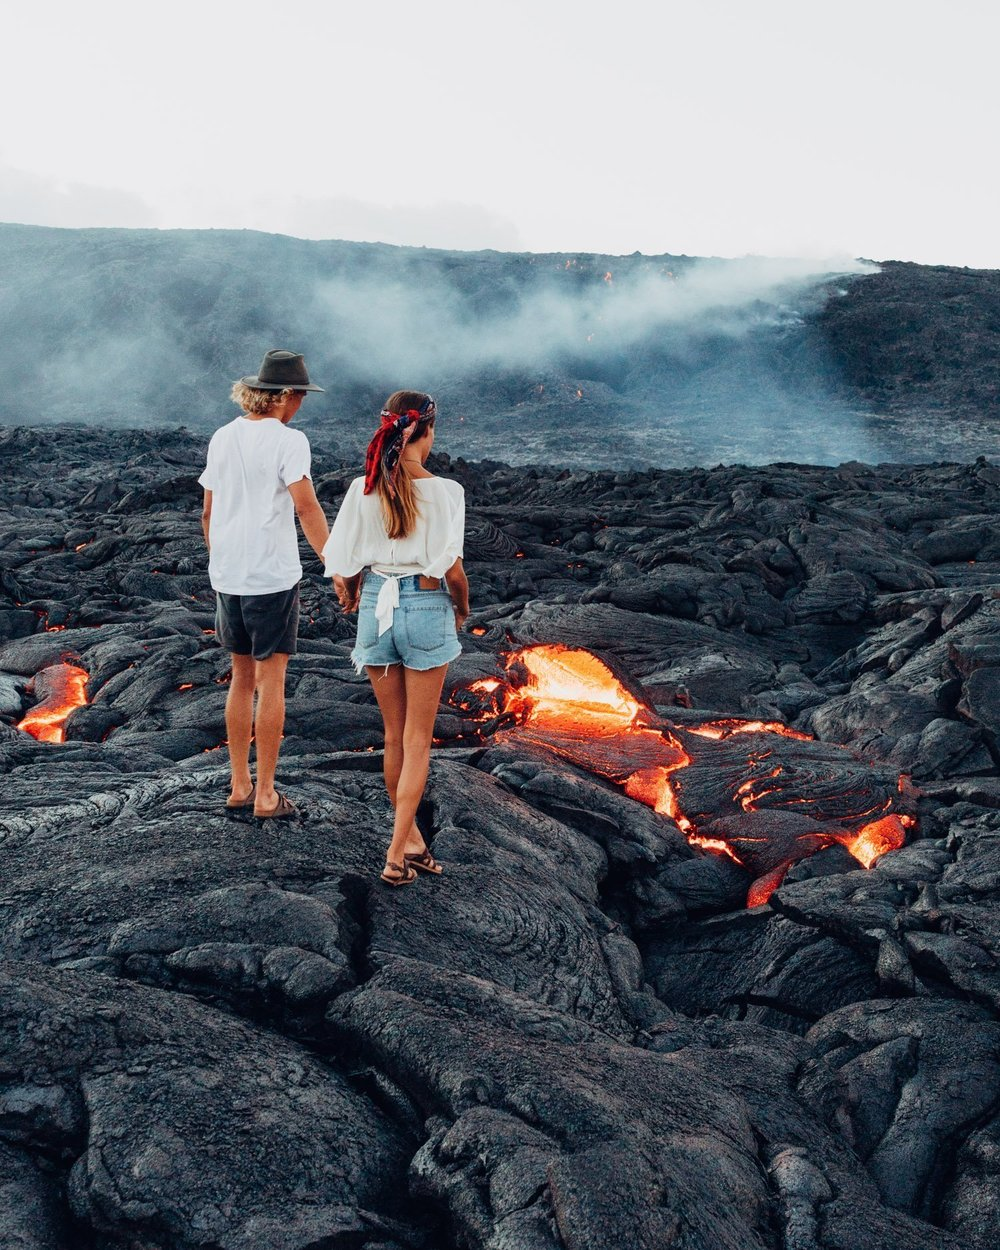 Cosmos Companions Tahnee Pinches and Morgan McDougall hiking in the Volcano National Park on the Big Island of Hawaii.